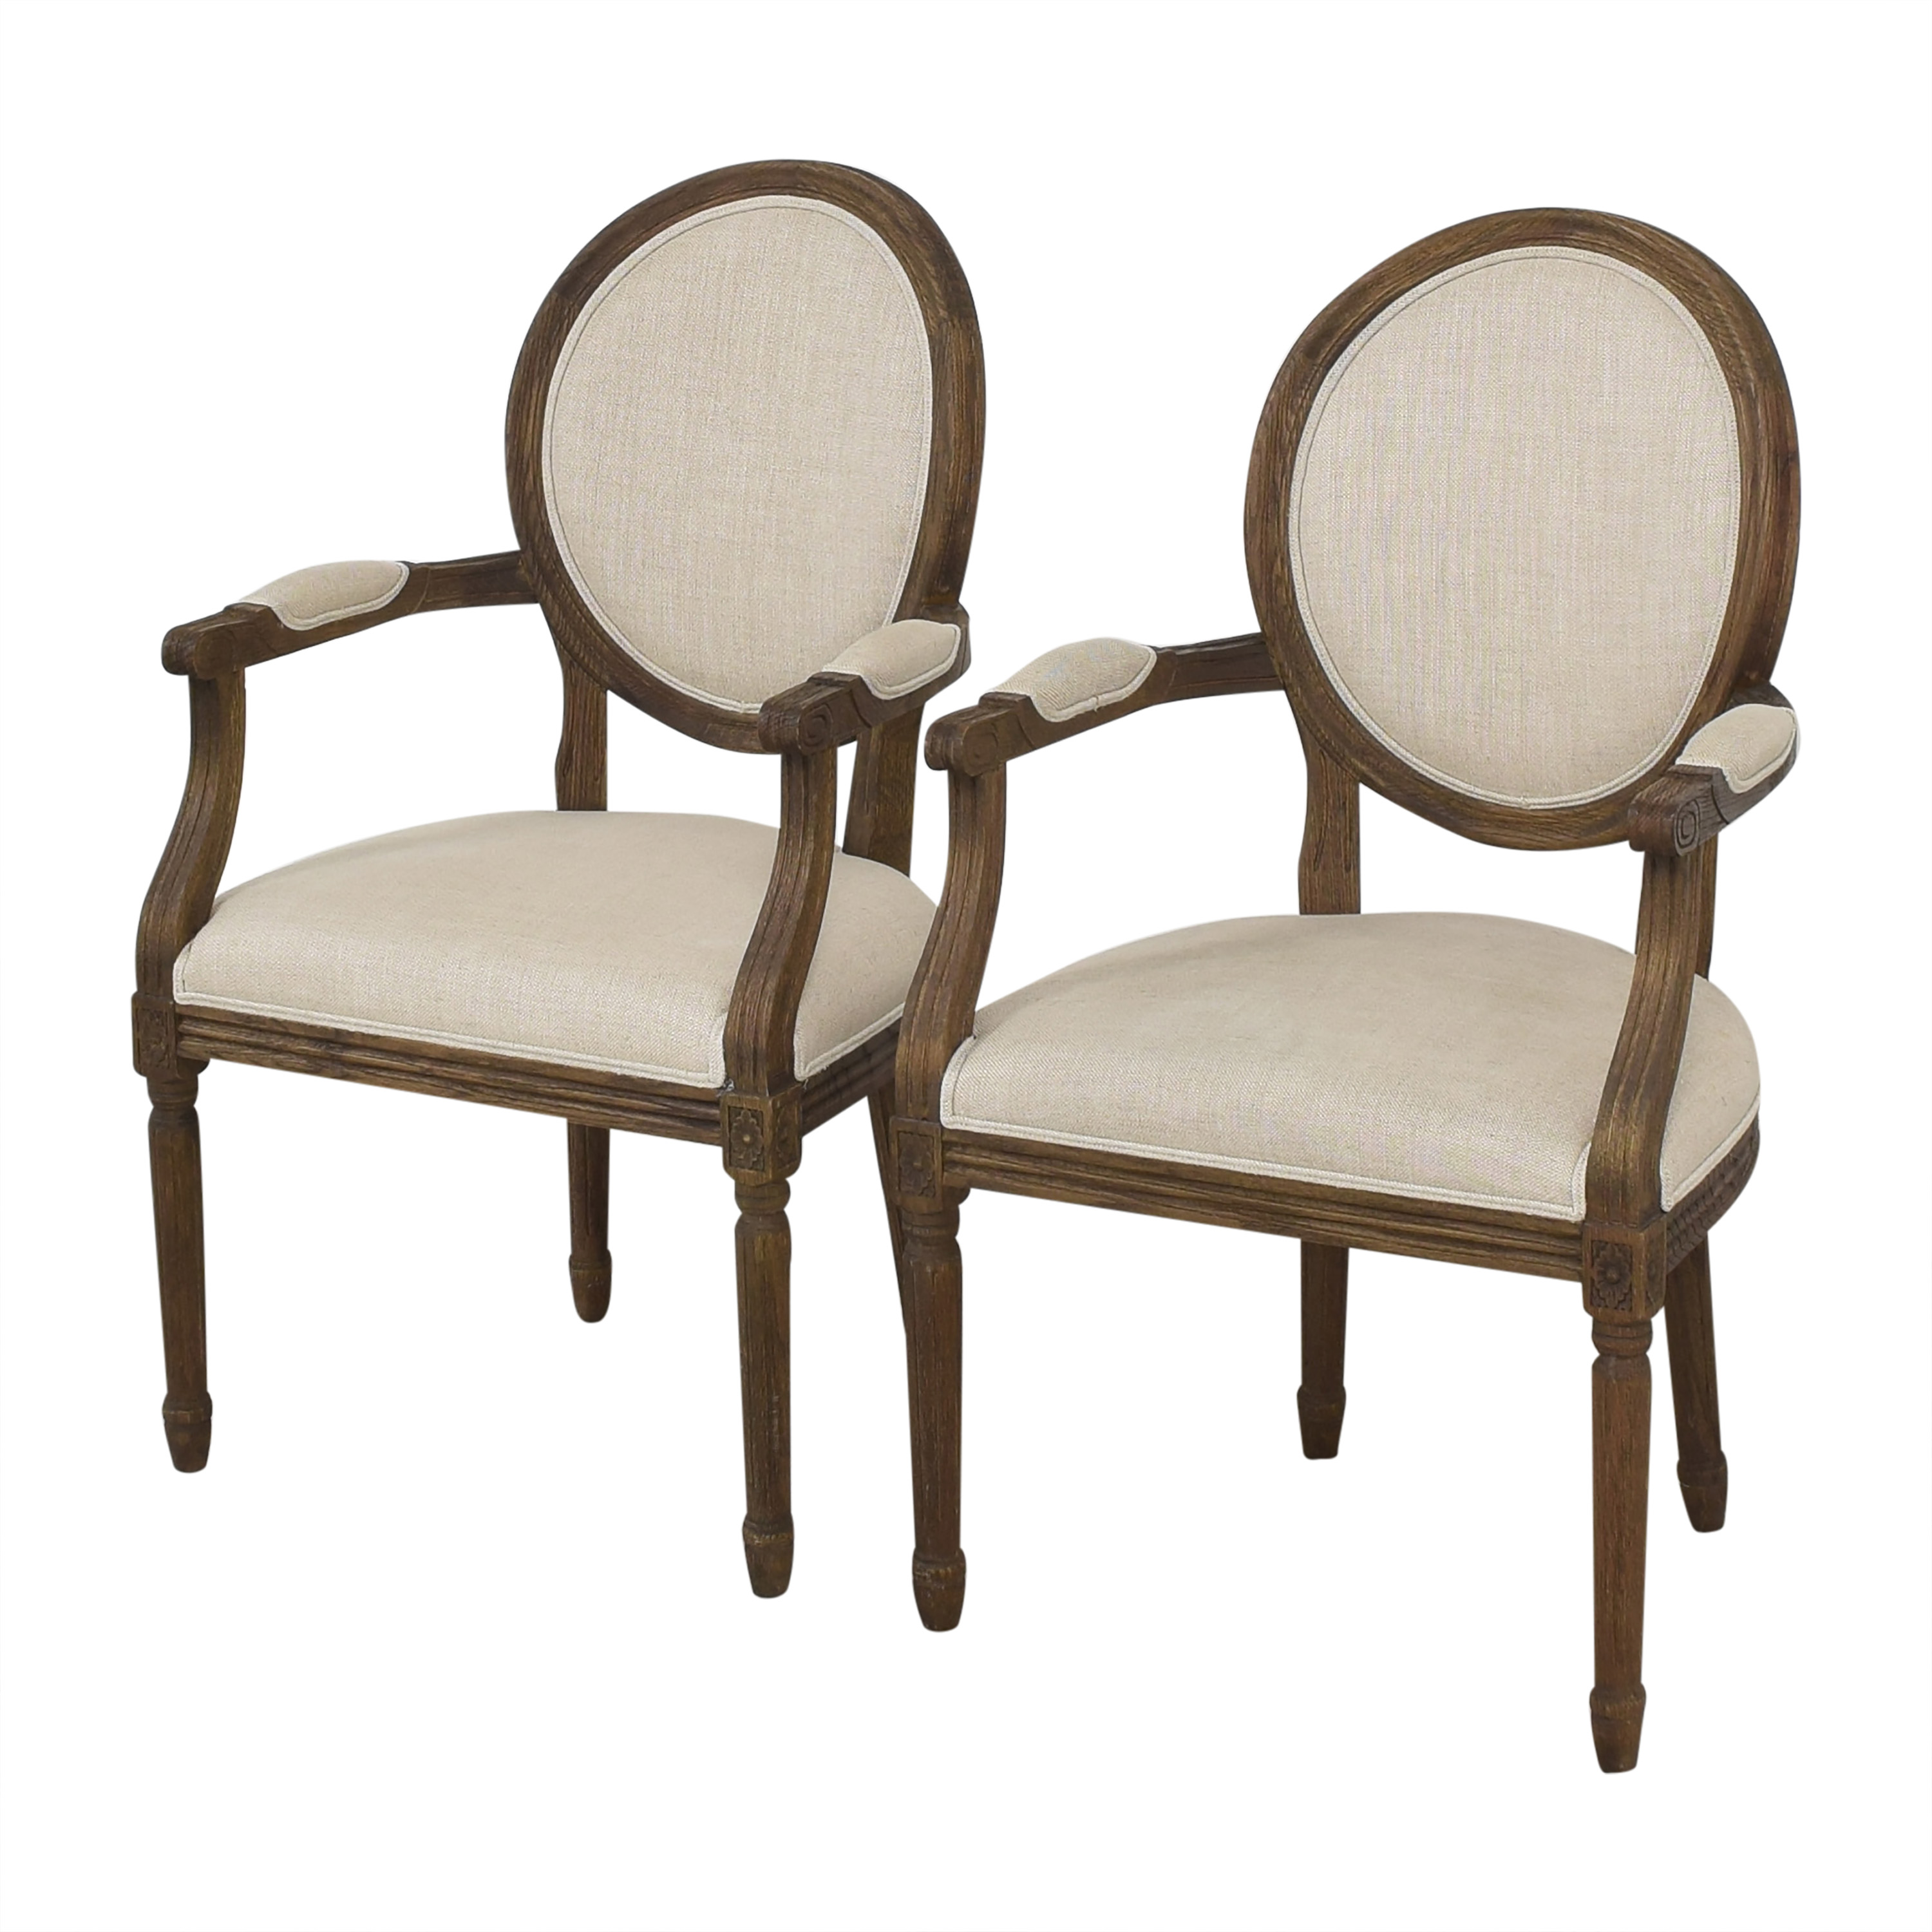 shop Restoration Hardware Restoration Hardware Vintage French Round Dining Arm Chairs online